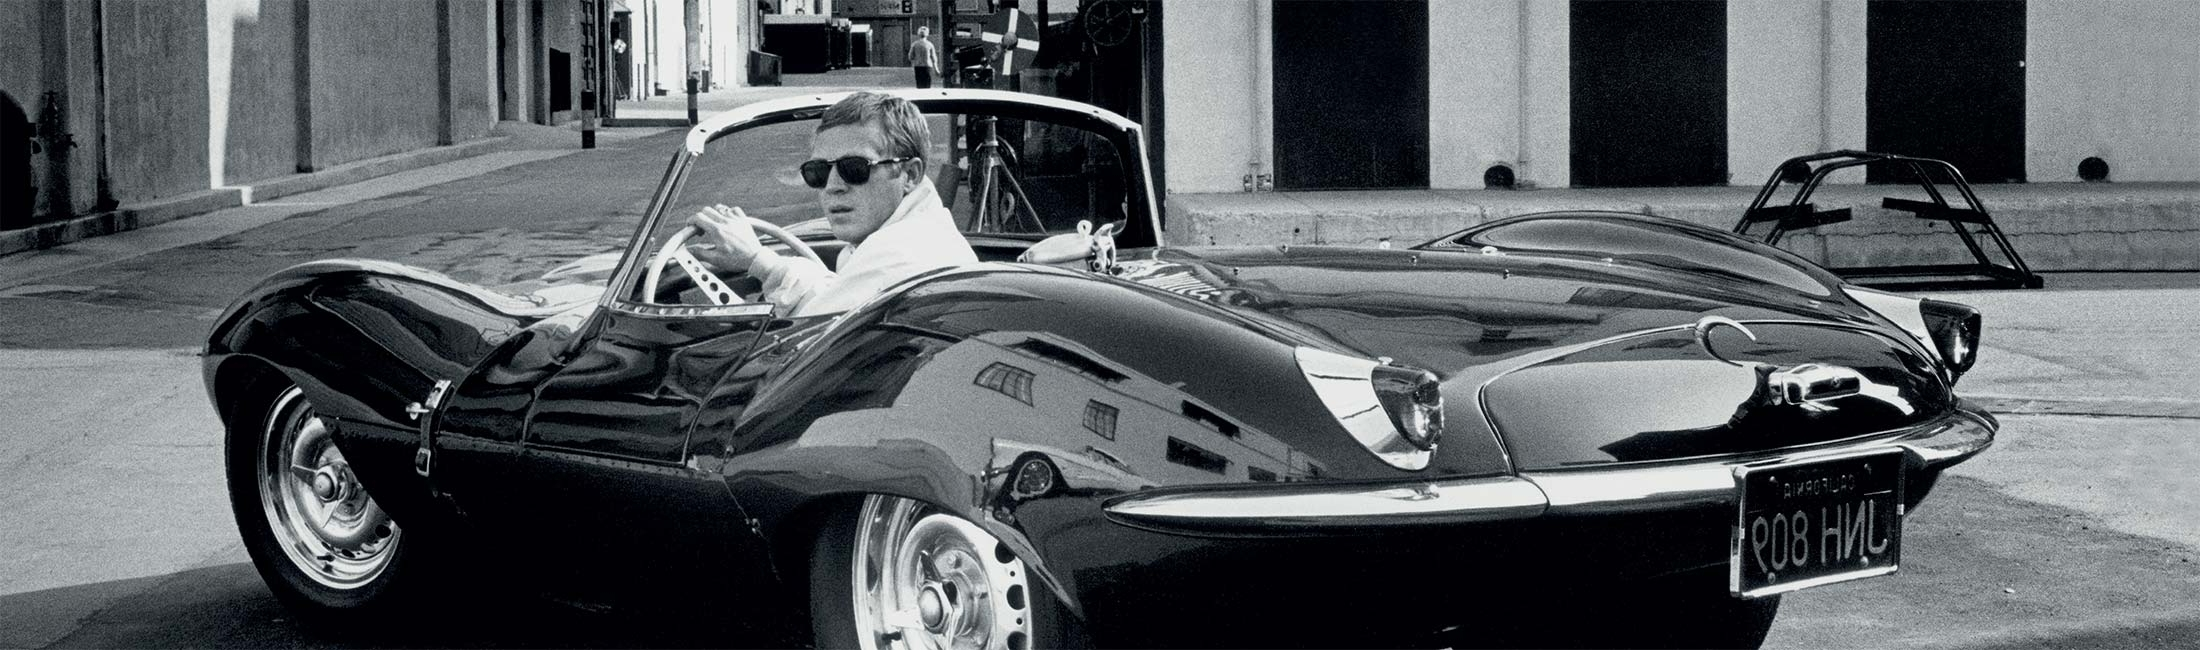 Steve Mcqueen (View 6 of 15)